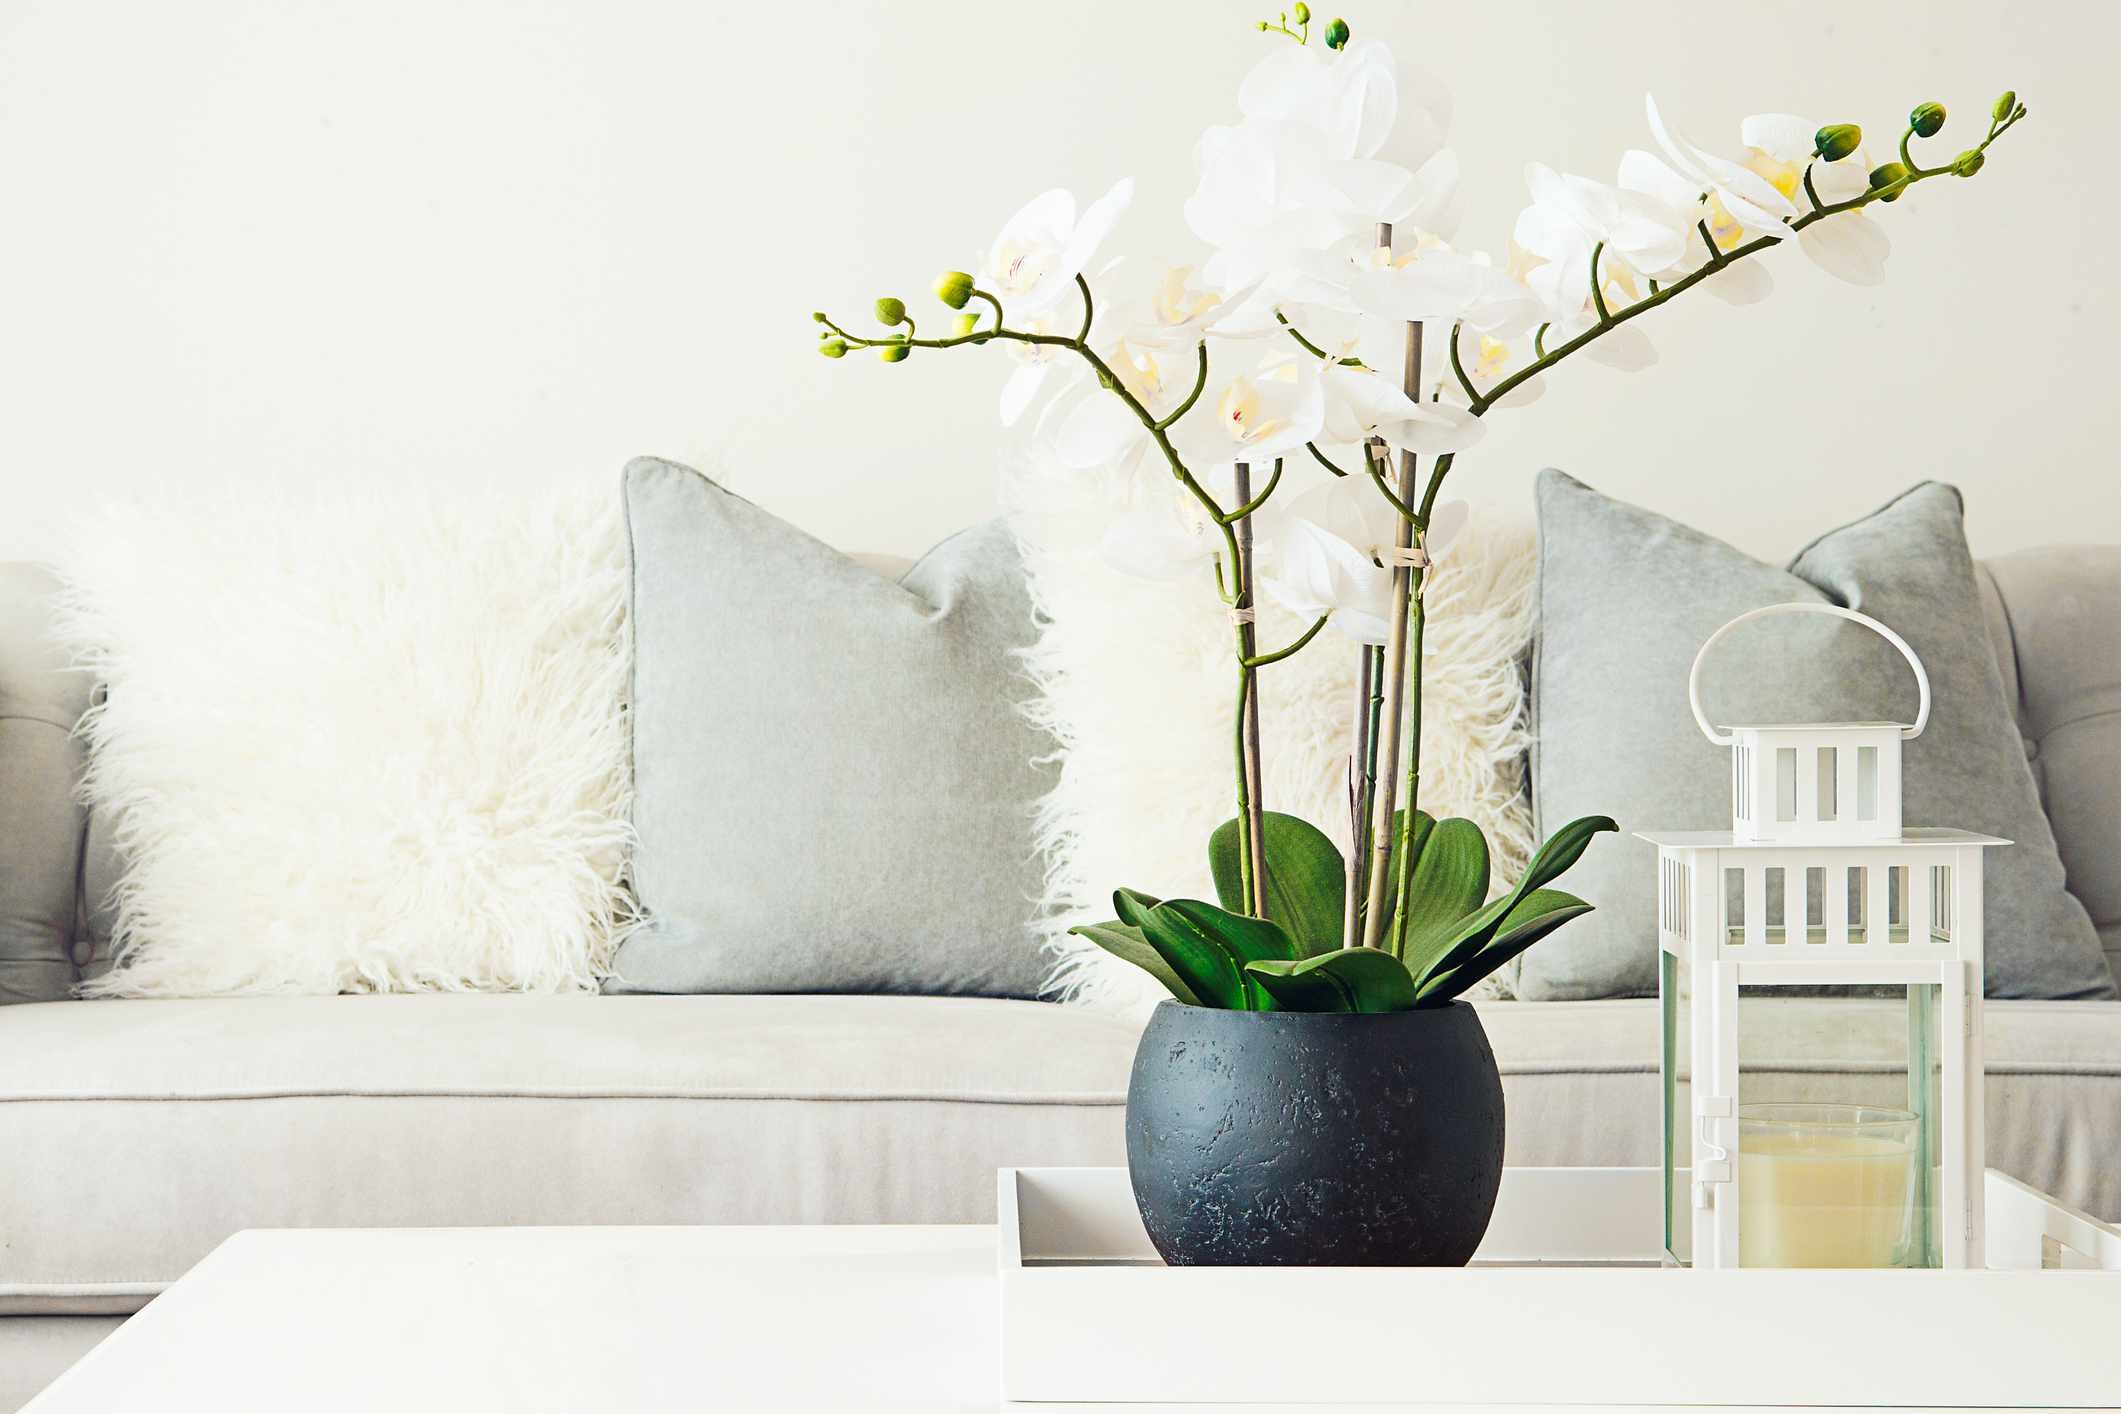 A white orchid on a coffee table in front of a white couch